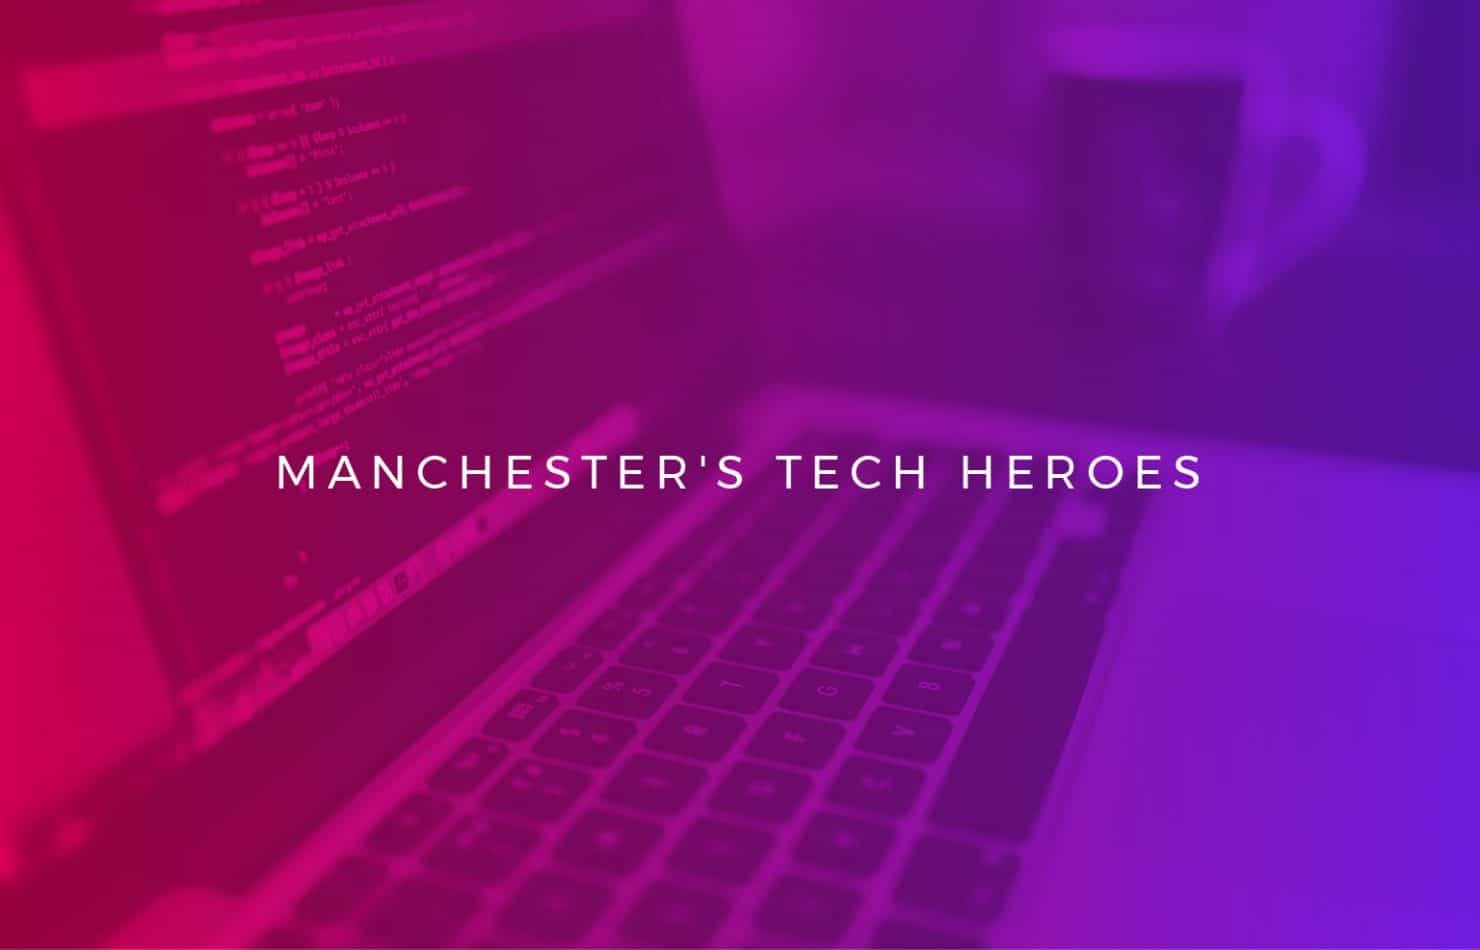 Manchester technology heroes